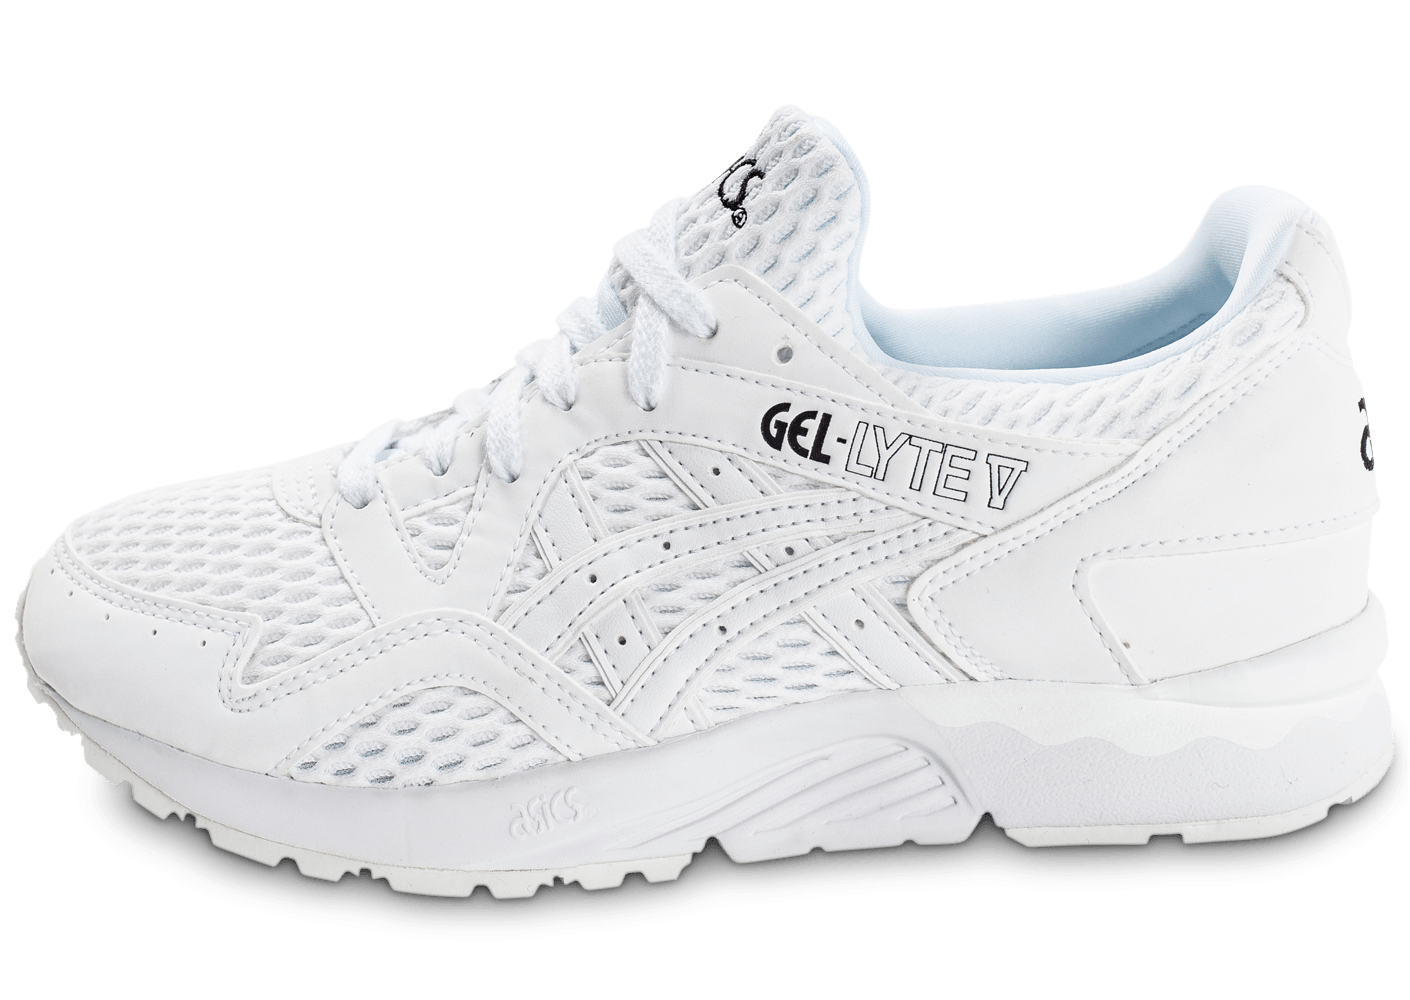 asics gel lyte 5 blanche homme. Black Bedroom Furniture Sets. Home Design Ideas